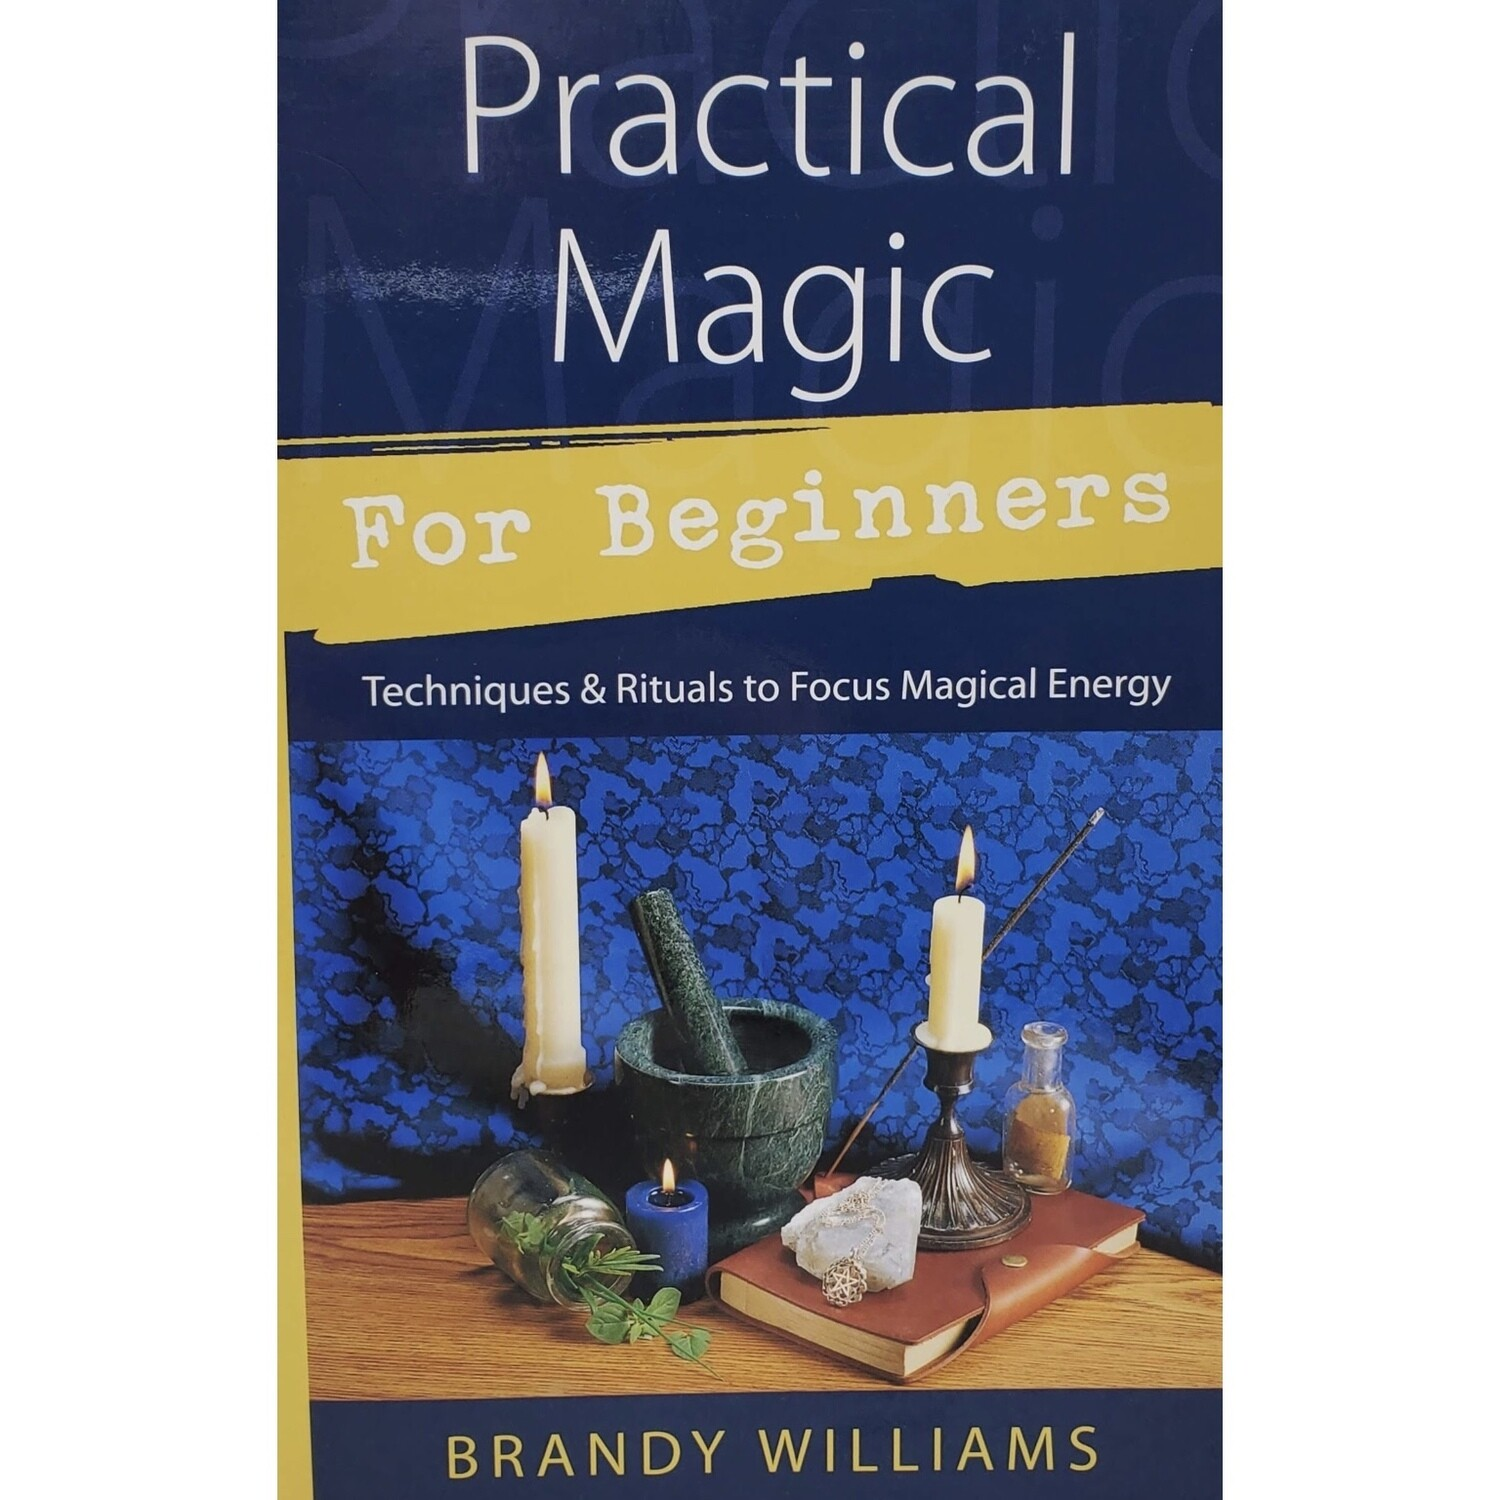 PRACTICAL MAGIC FOR BEGINNERS